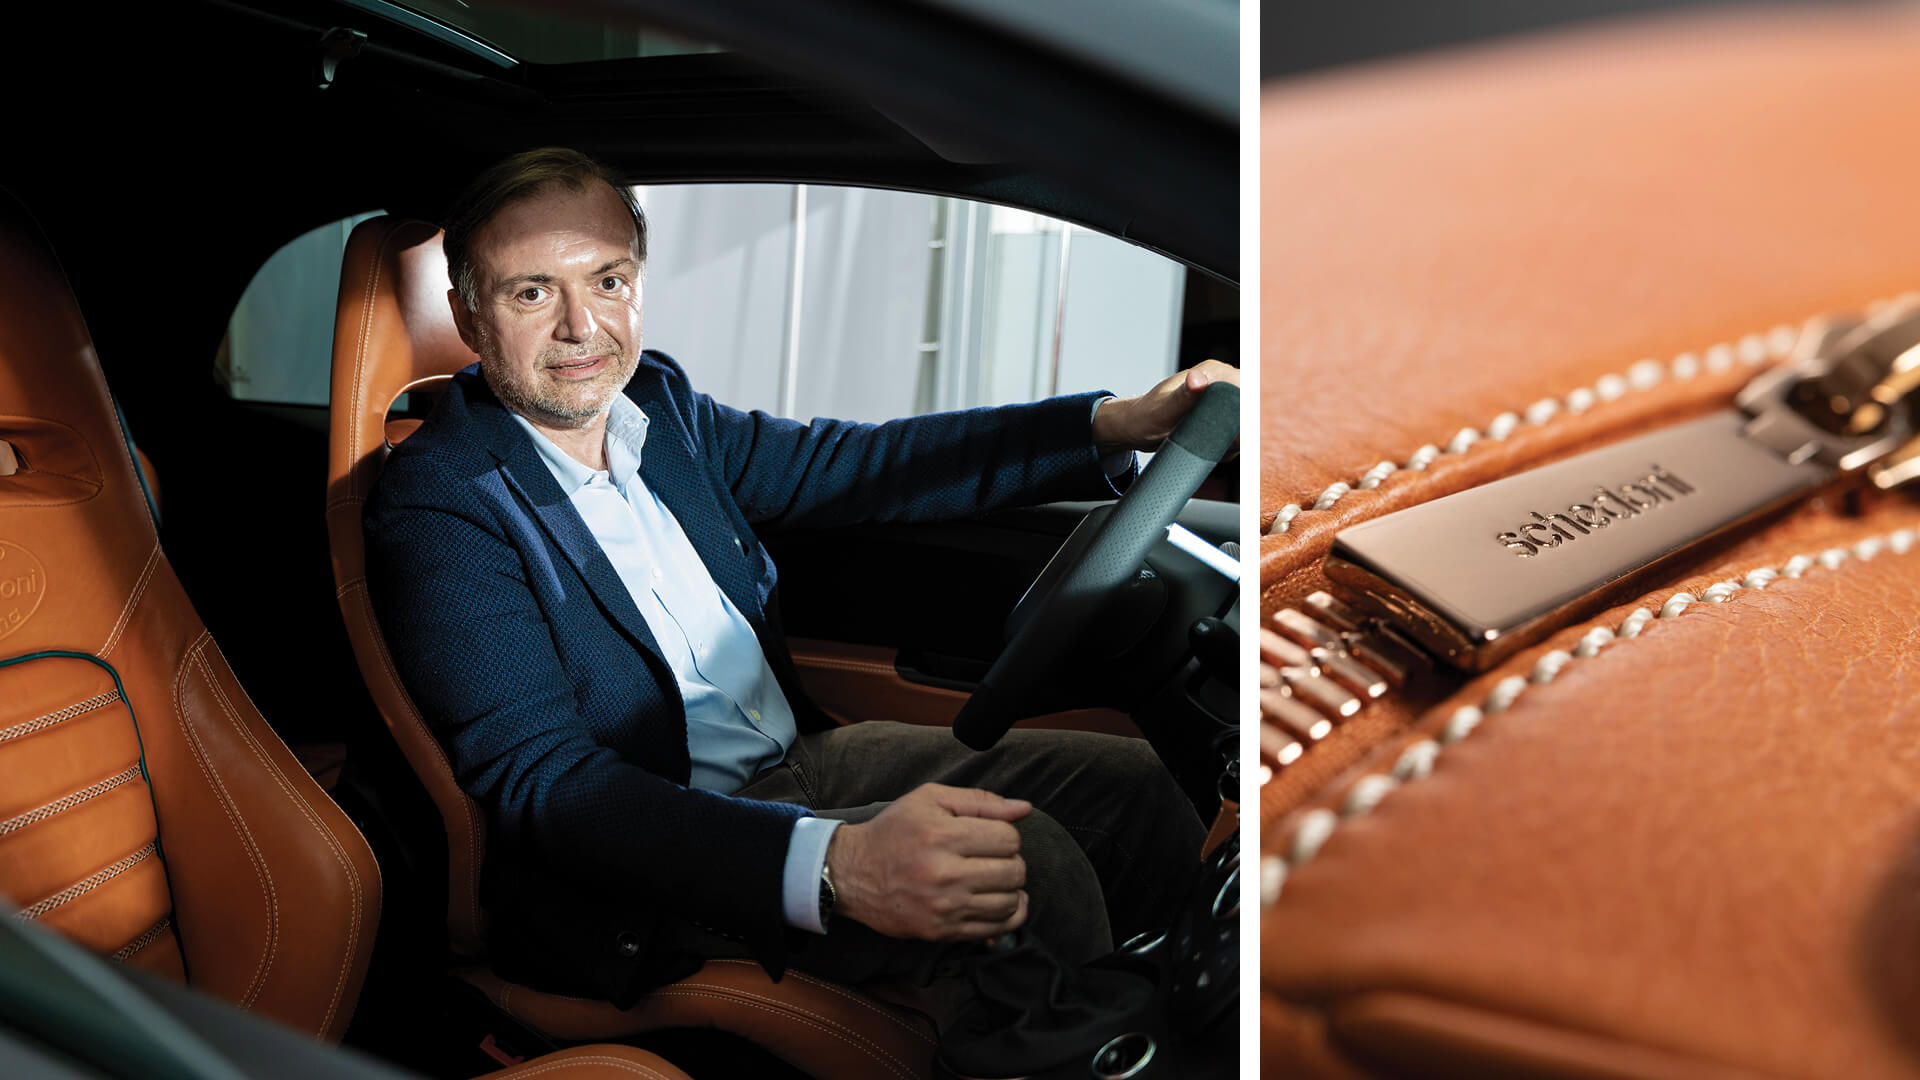 Simone Schedoni, President of the beloved Italian company Schedoni that creates bespoke luggage for high-end automotive brands such as Ferrari and McLaren | Schedoni | STIRworld